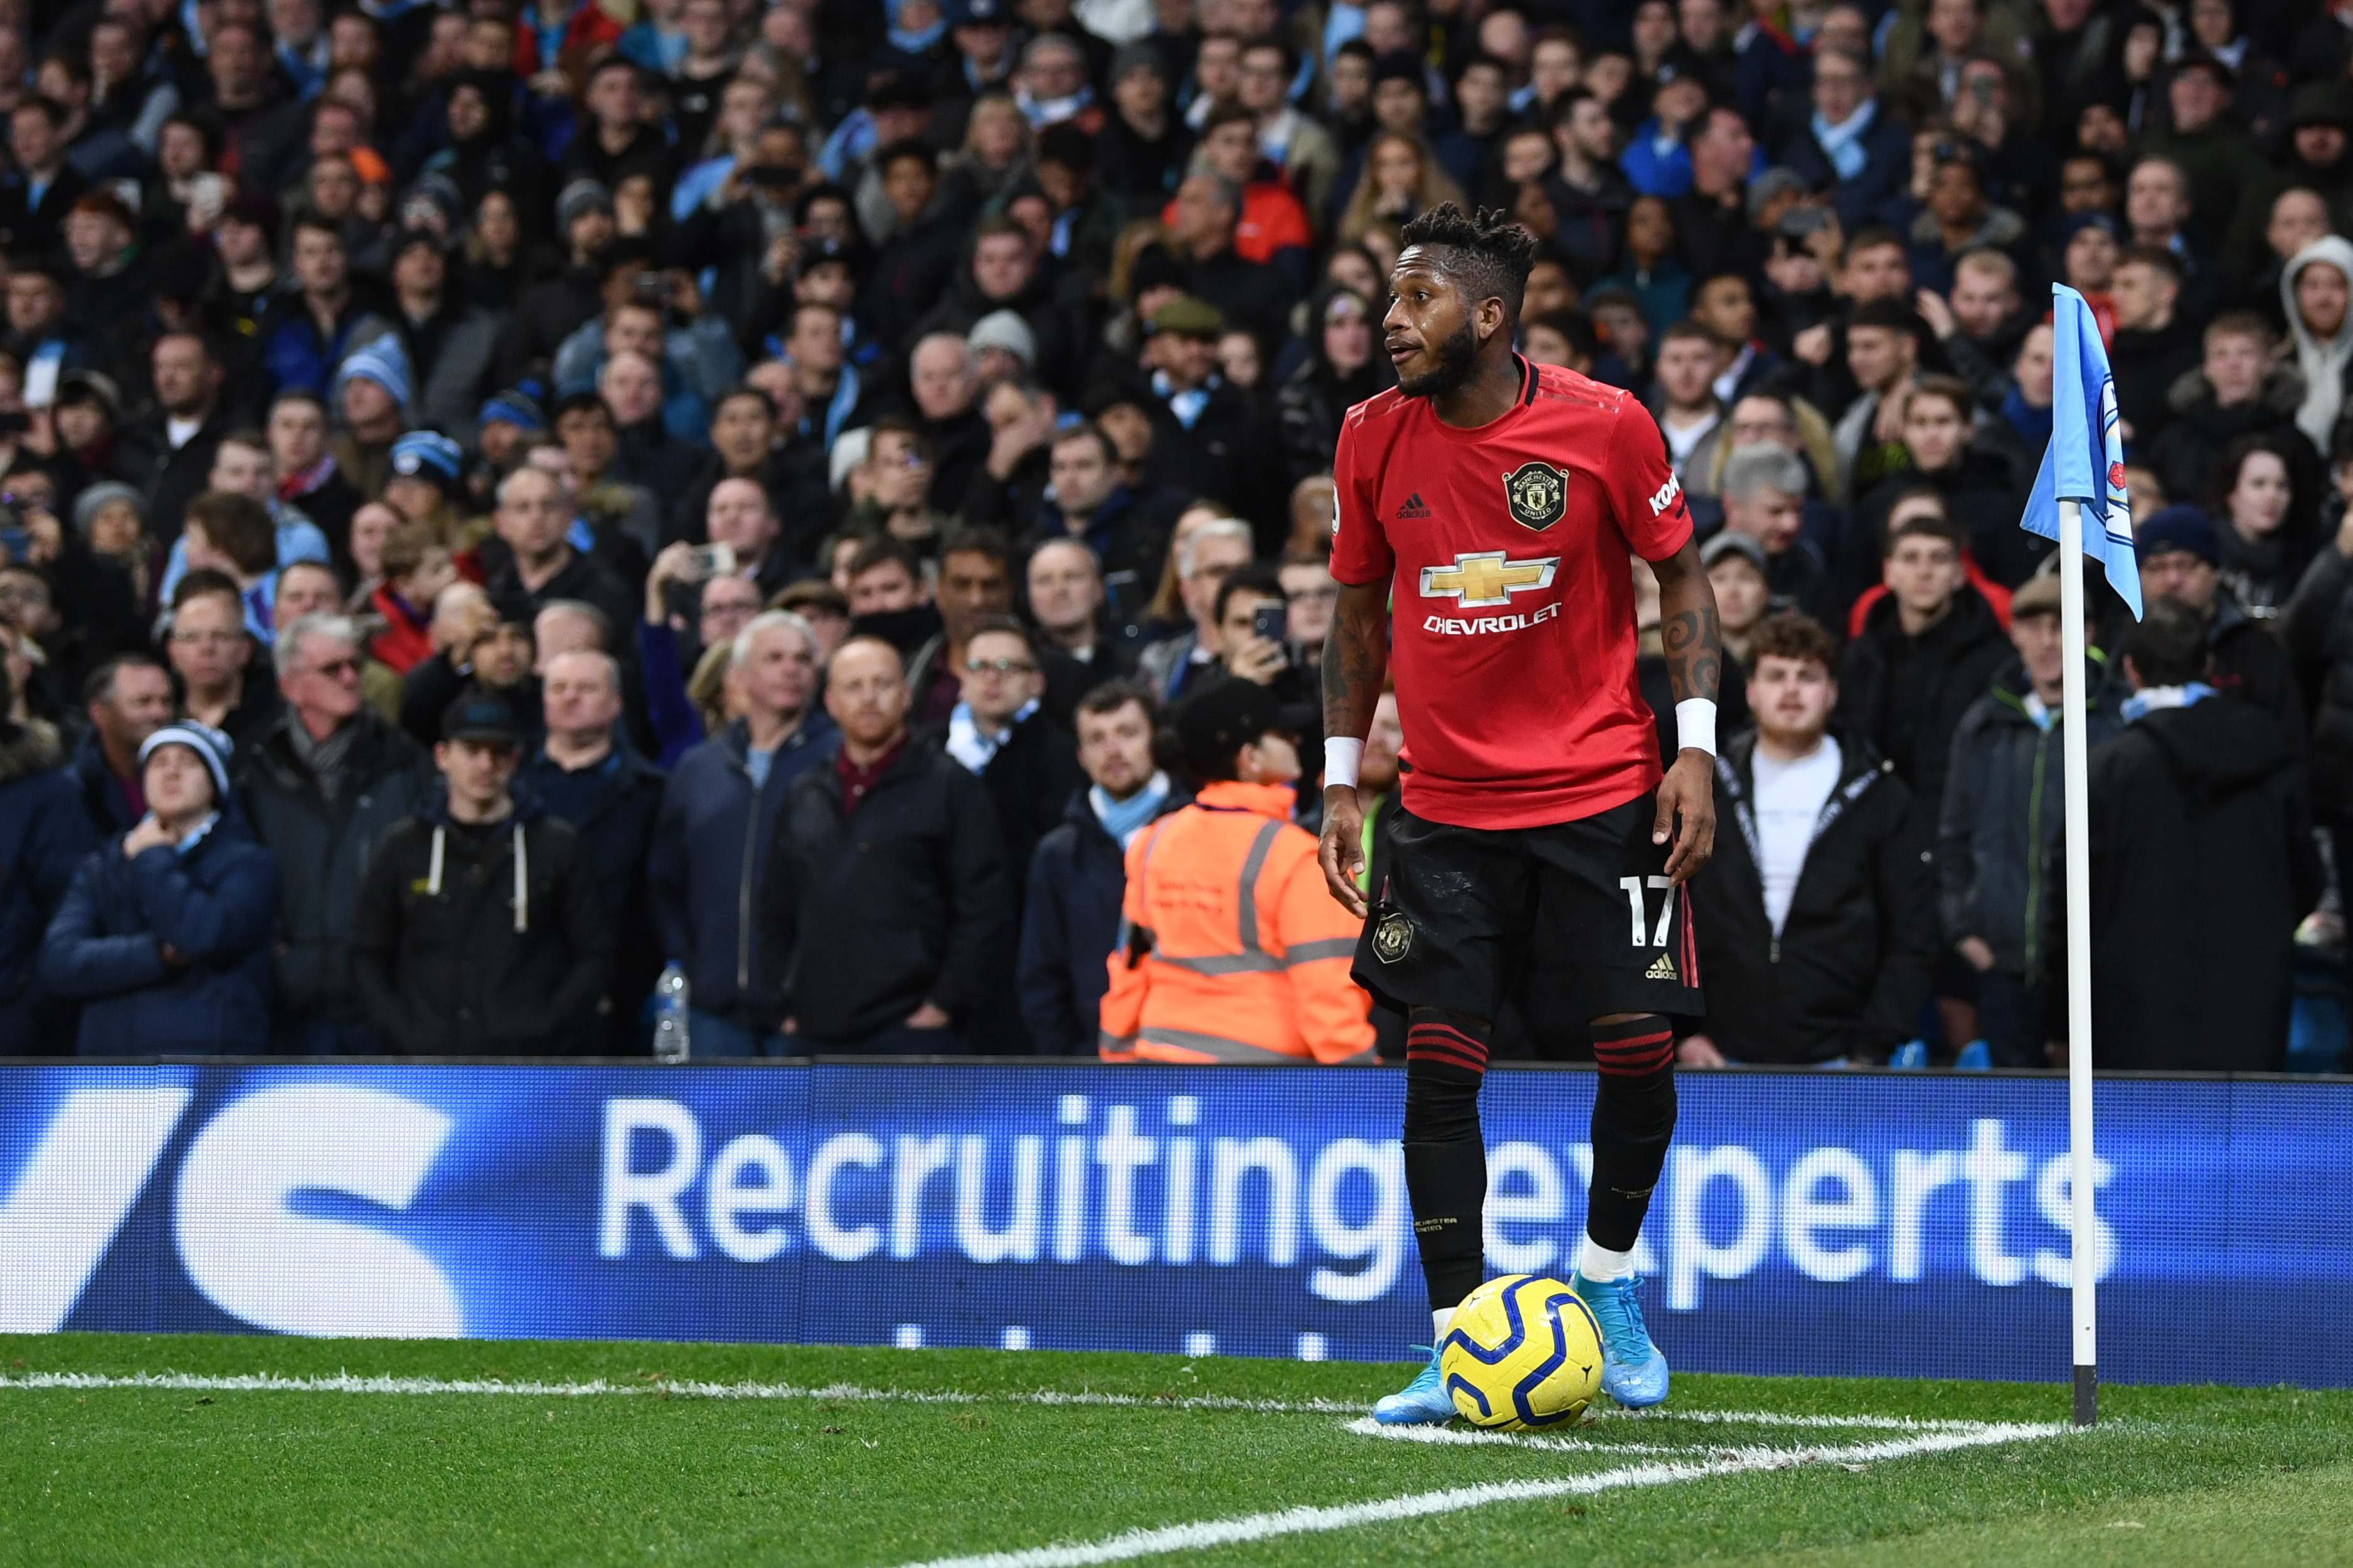 Fred of Manchester United takes a corner kick after being hit by objects thrown by the Manchester City fans during the Premier League derby at Etihad Stadium.